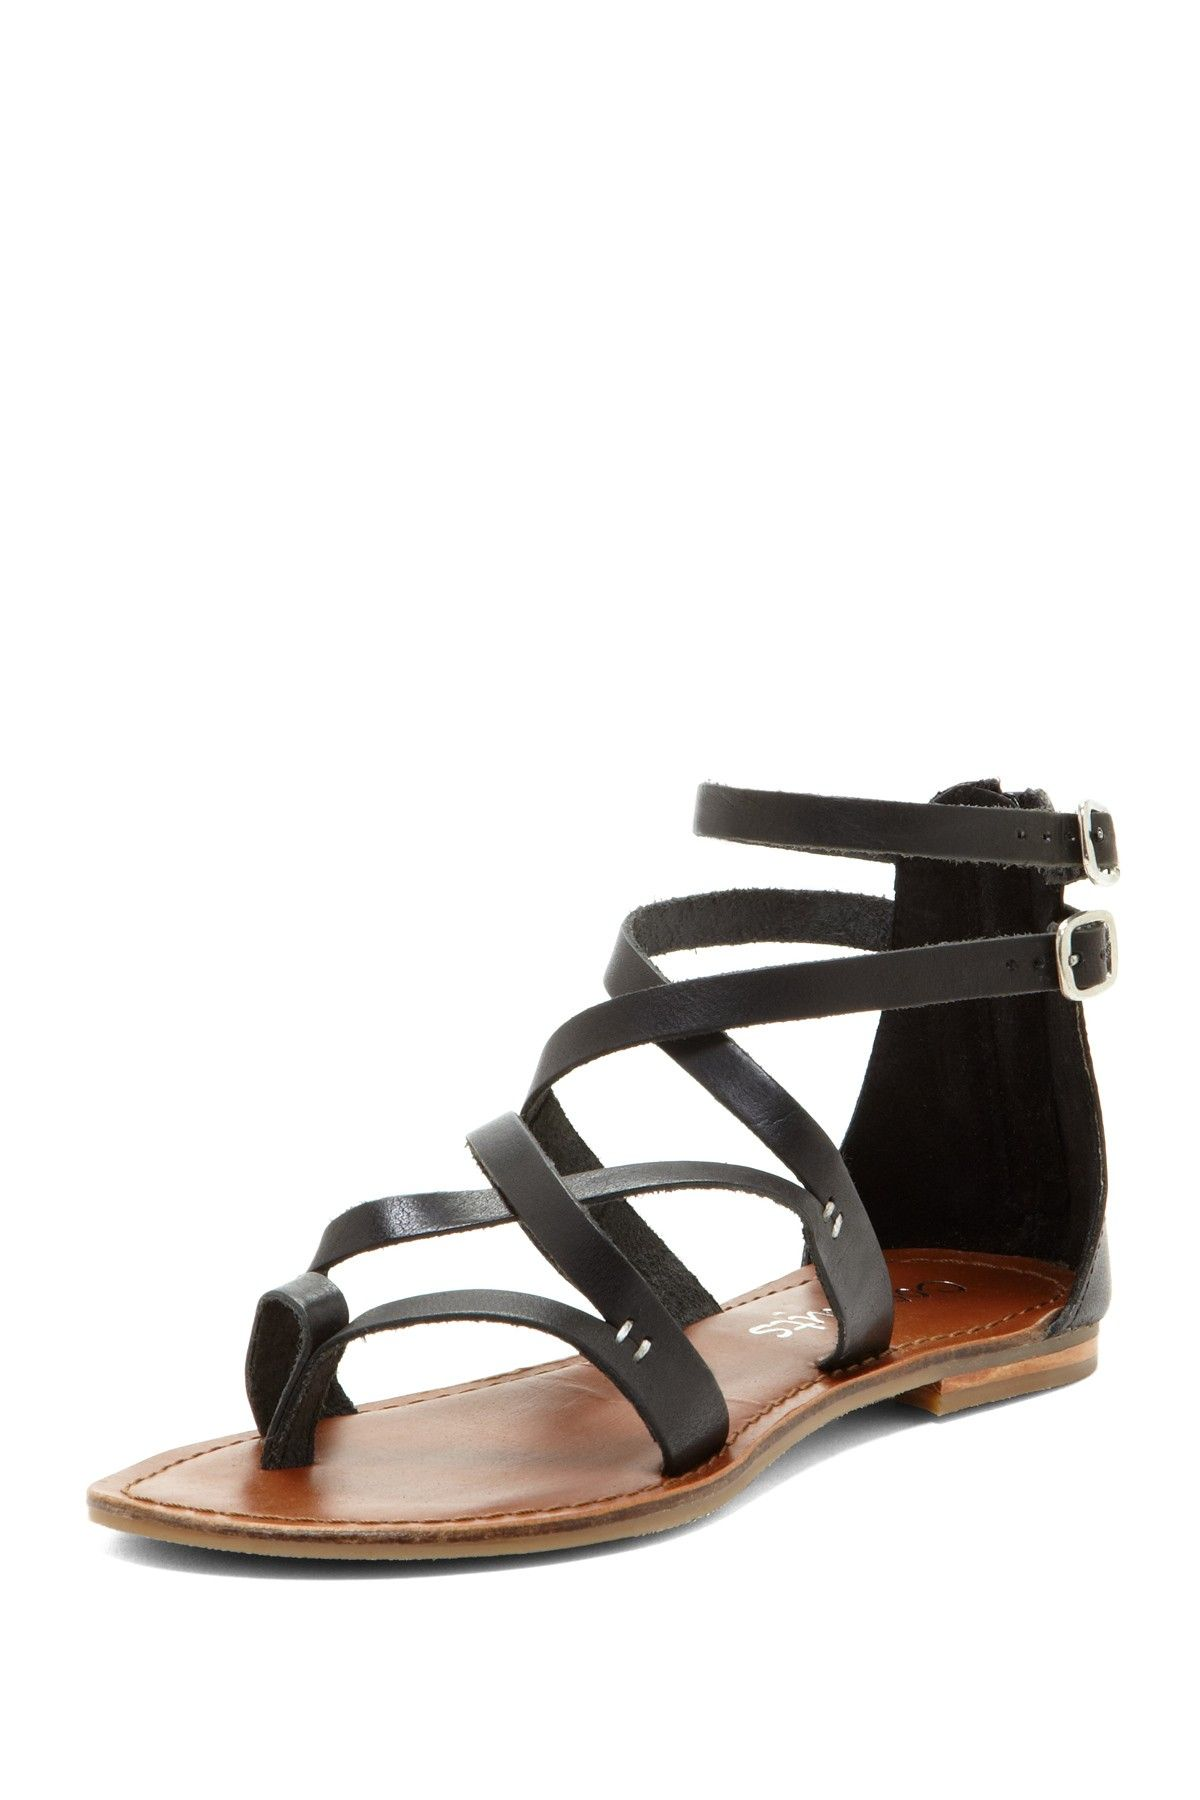 bbfce4397 Coconuts by Matisse Terra Crisscross Sandal | Fashionista | Shoes ...